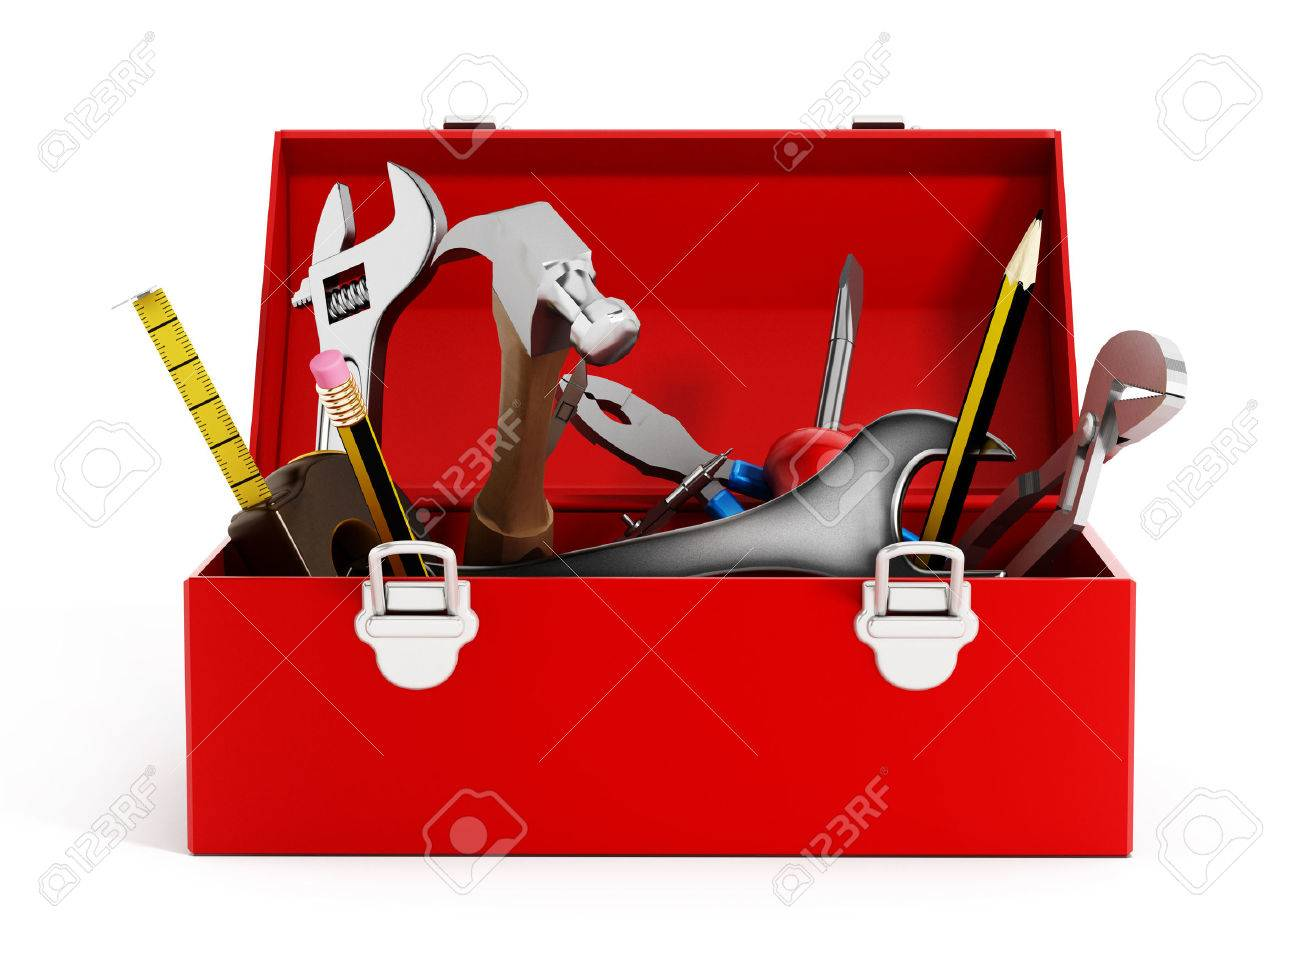 hight resolution of red toolbox full of hand tools isolated on white background stock photo 47188618